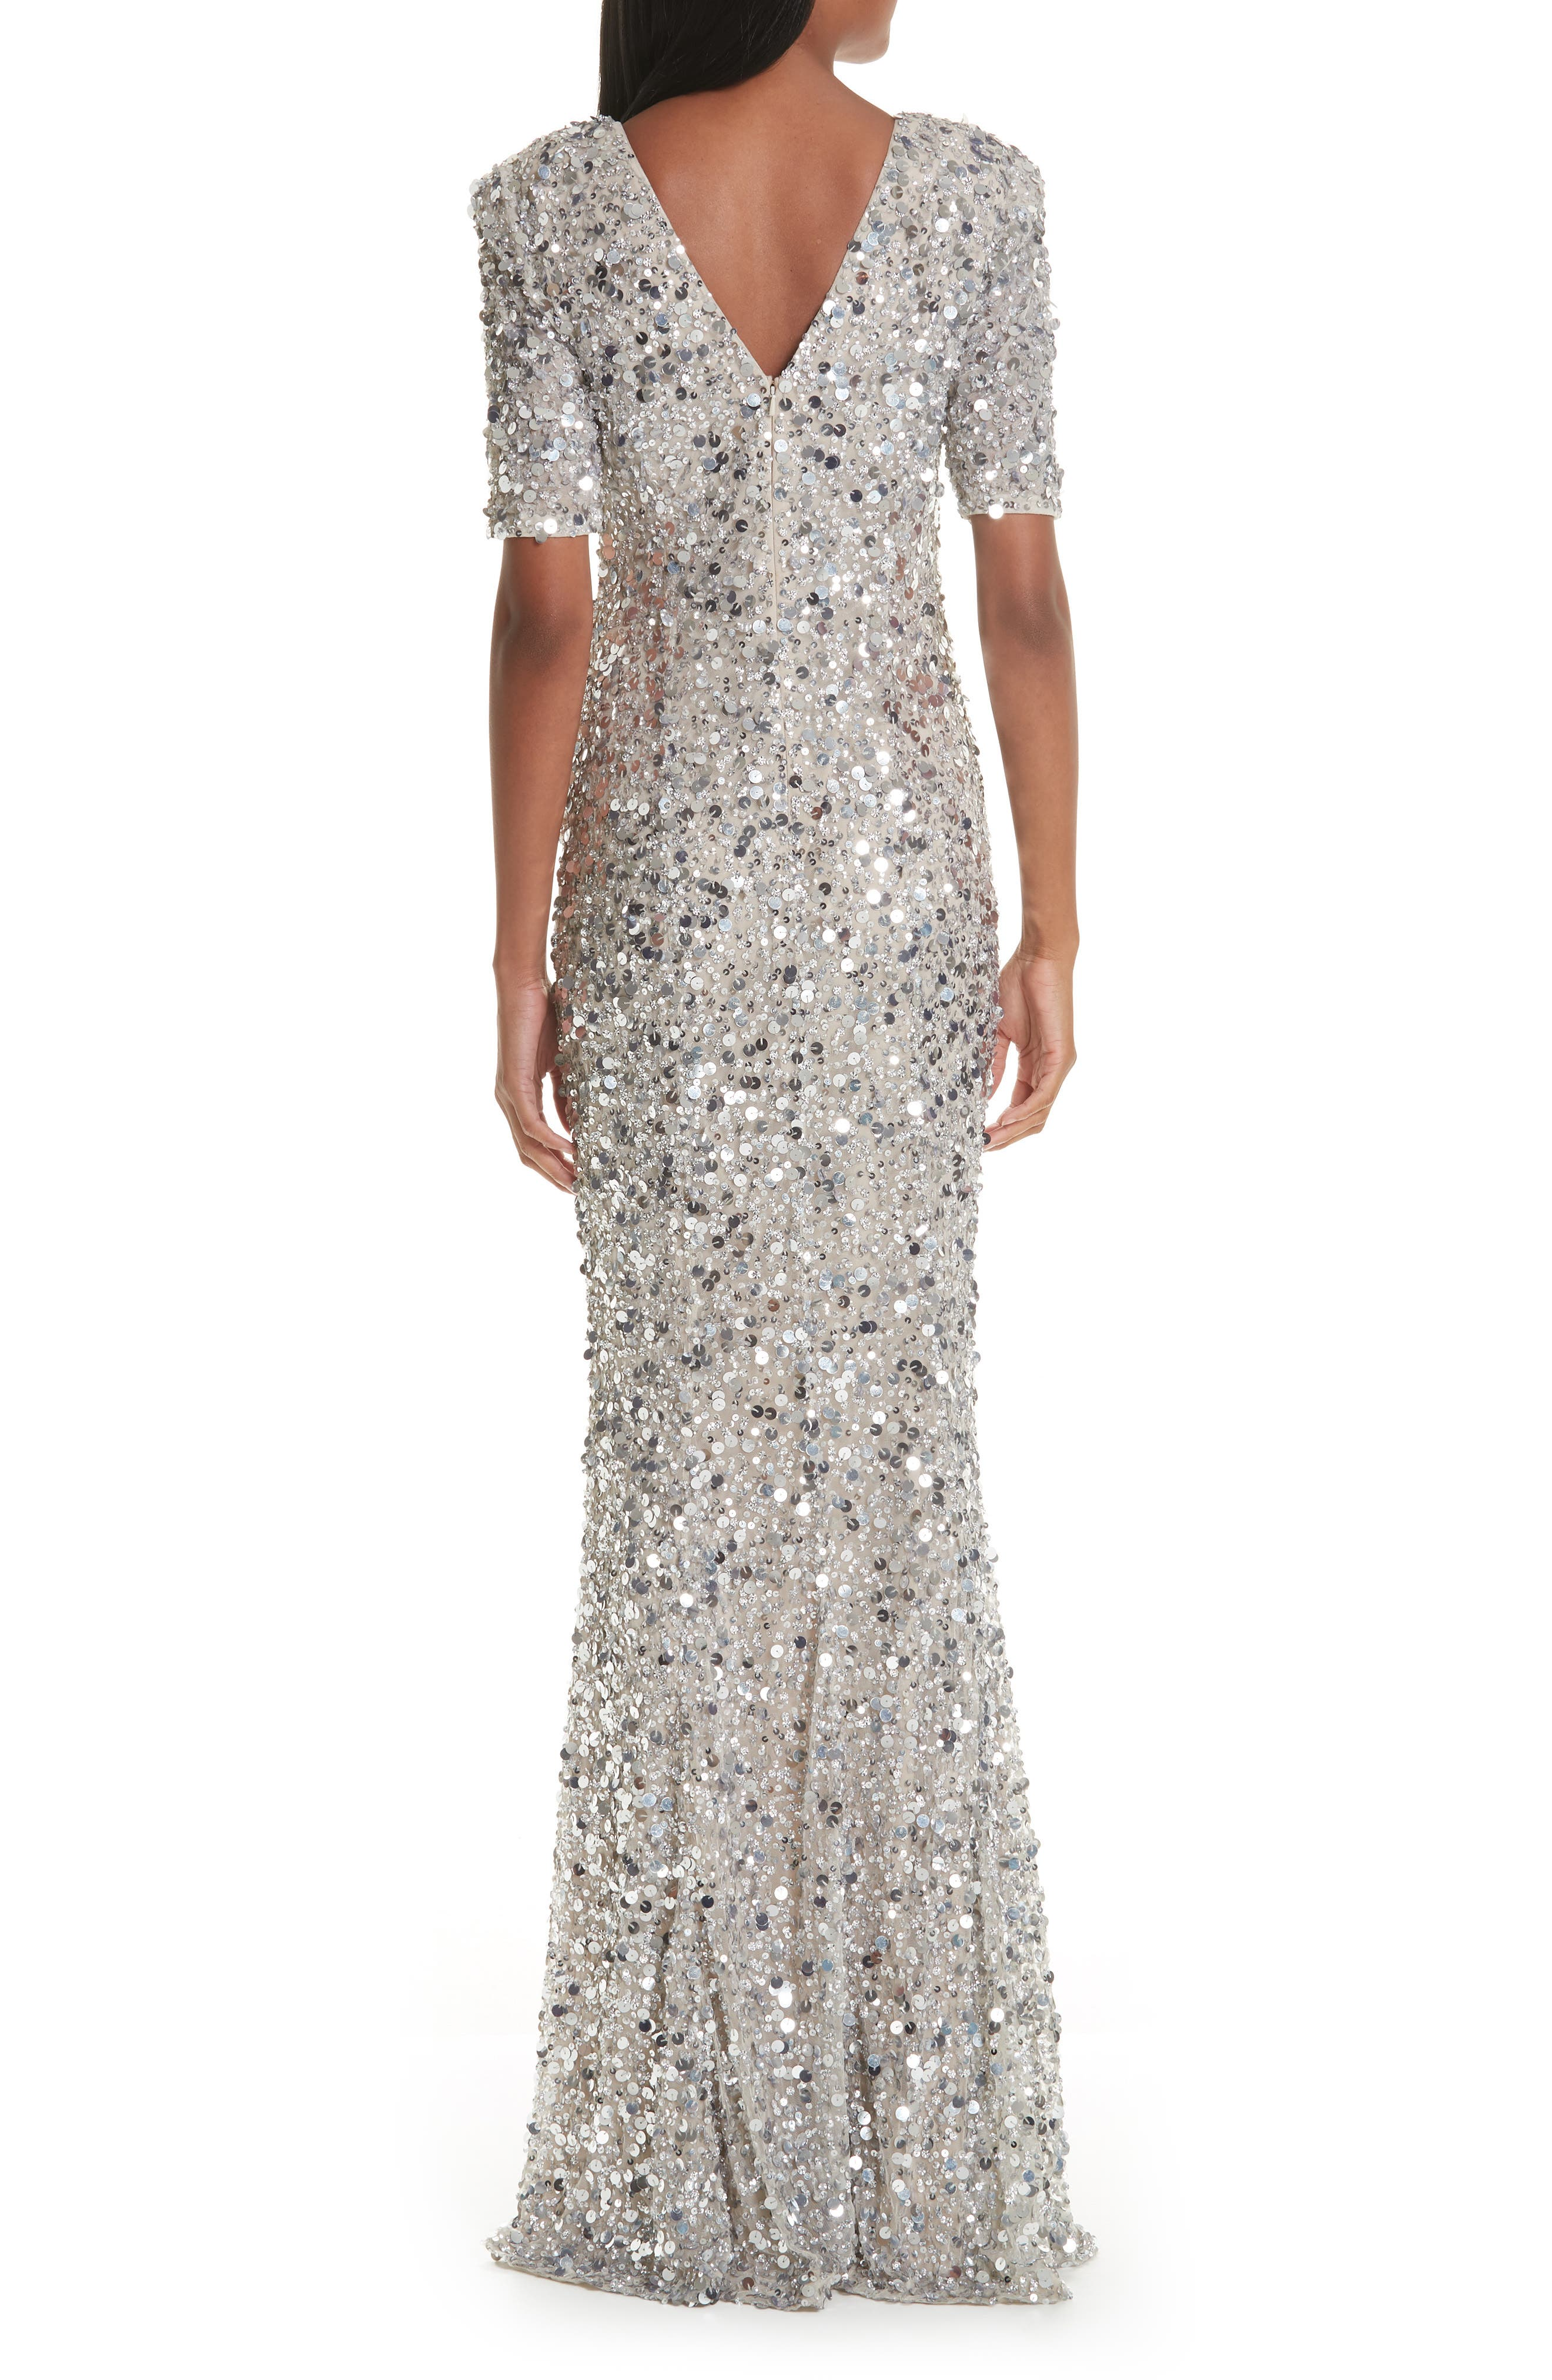 Zowie Sequin Gown,                             Alternate thumbnail 2, color,                             SILVER